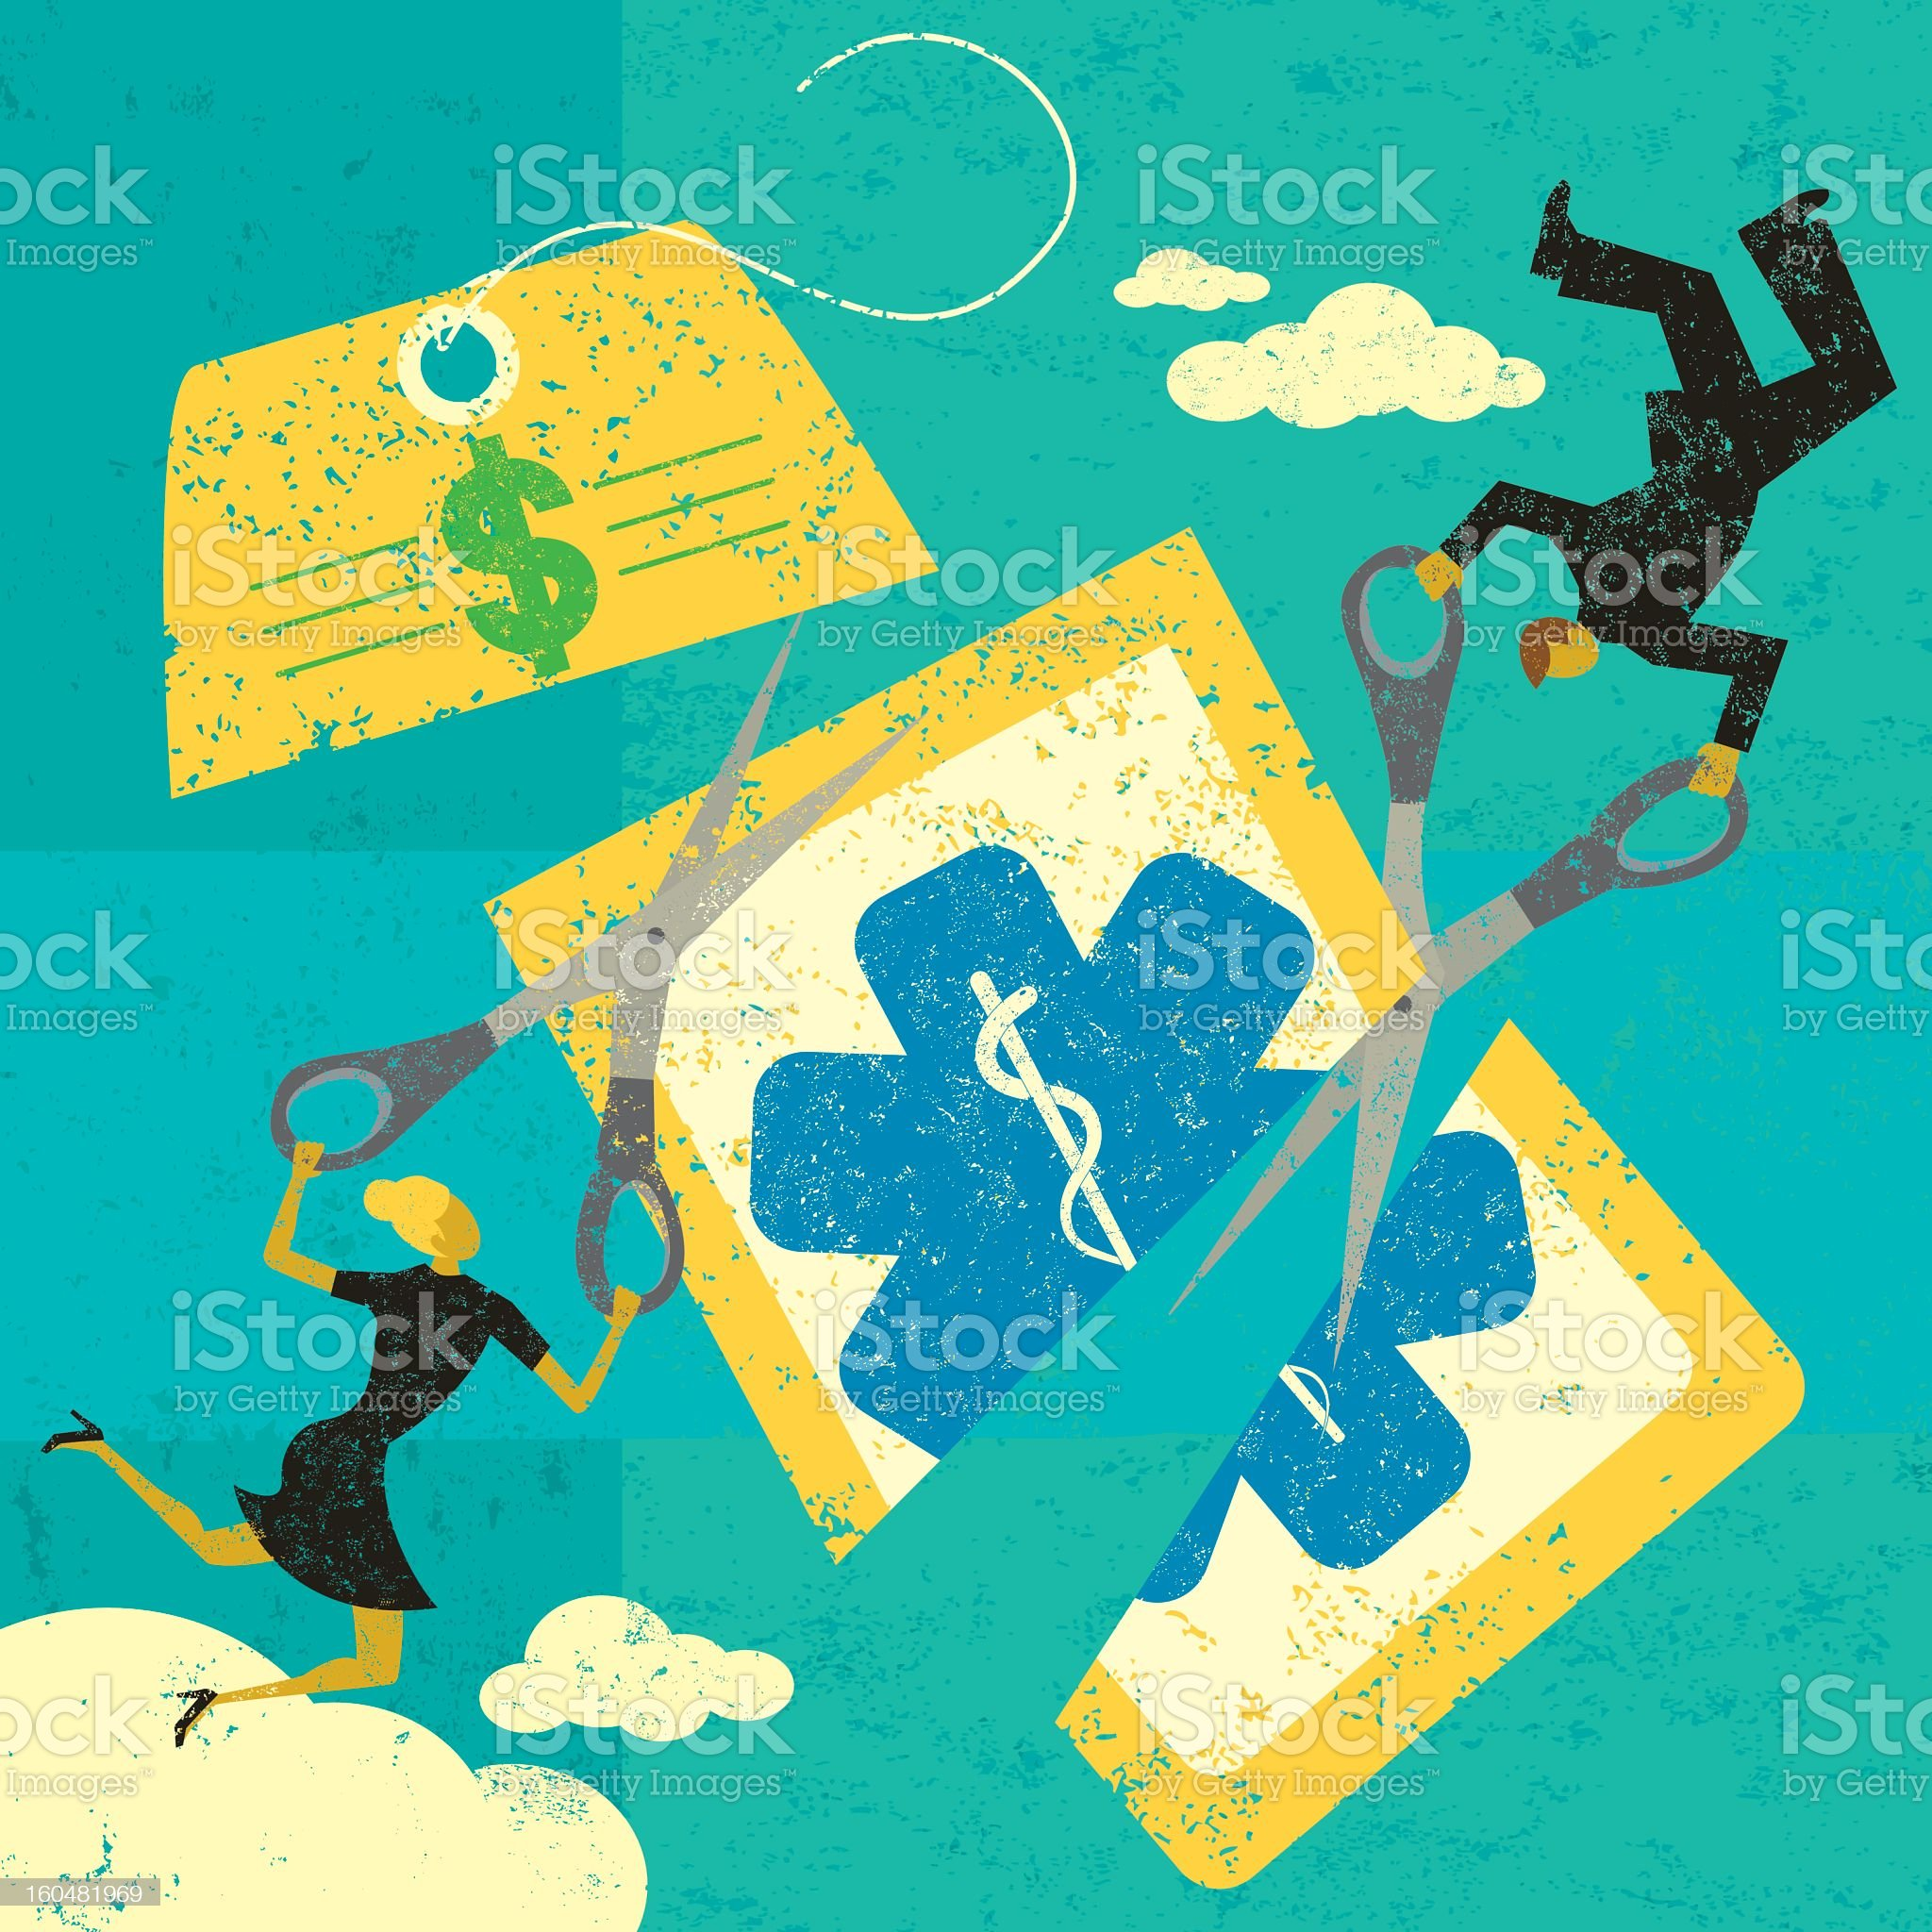 Drawing of businessman and woman cutting healthcare costs royalty-free stock vector art